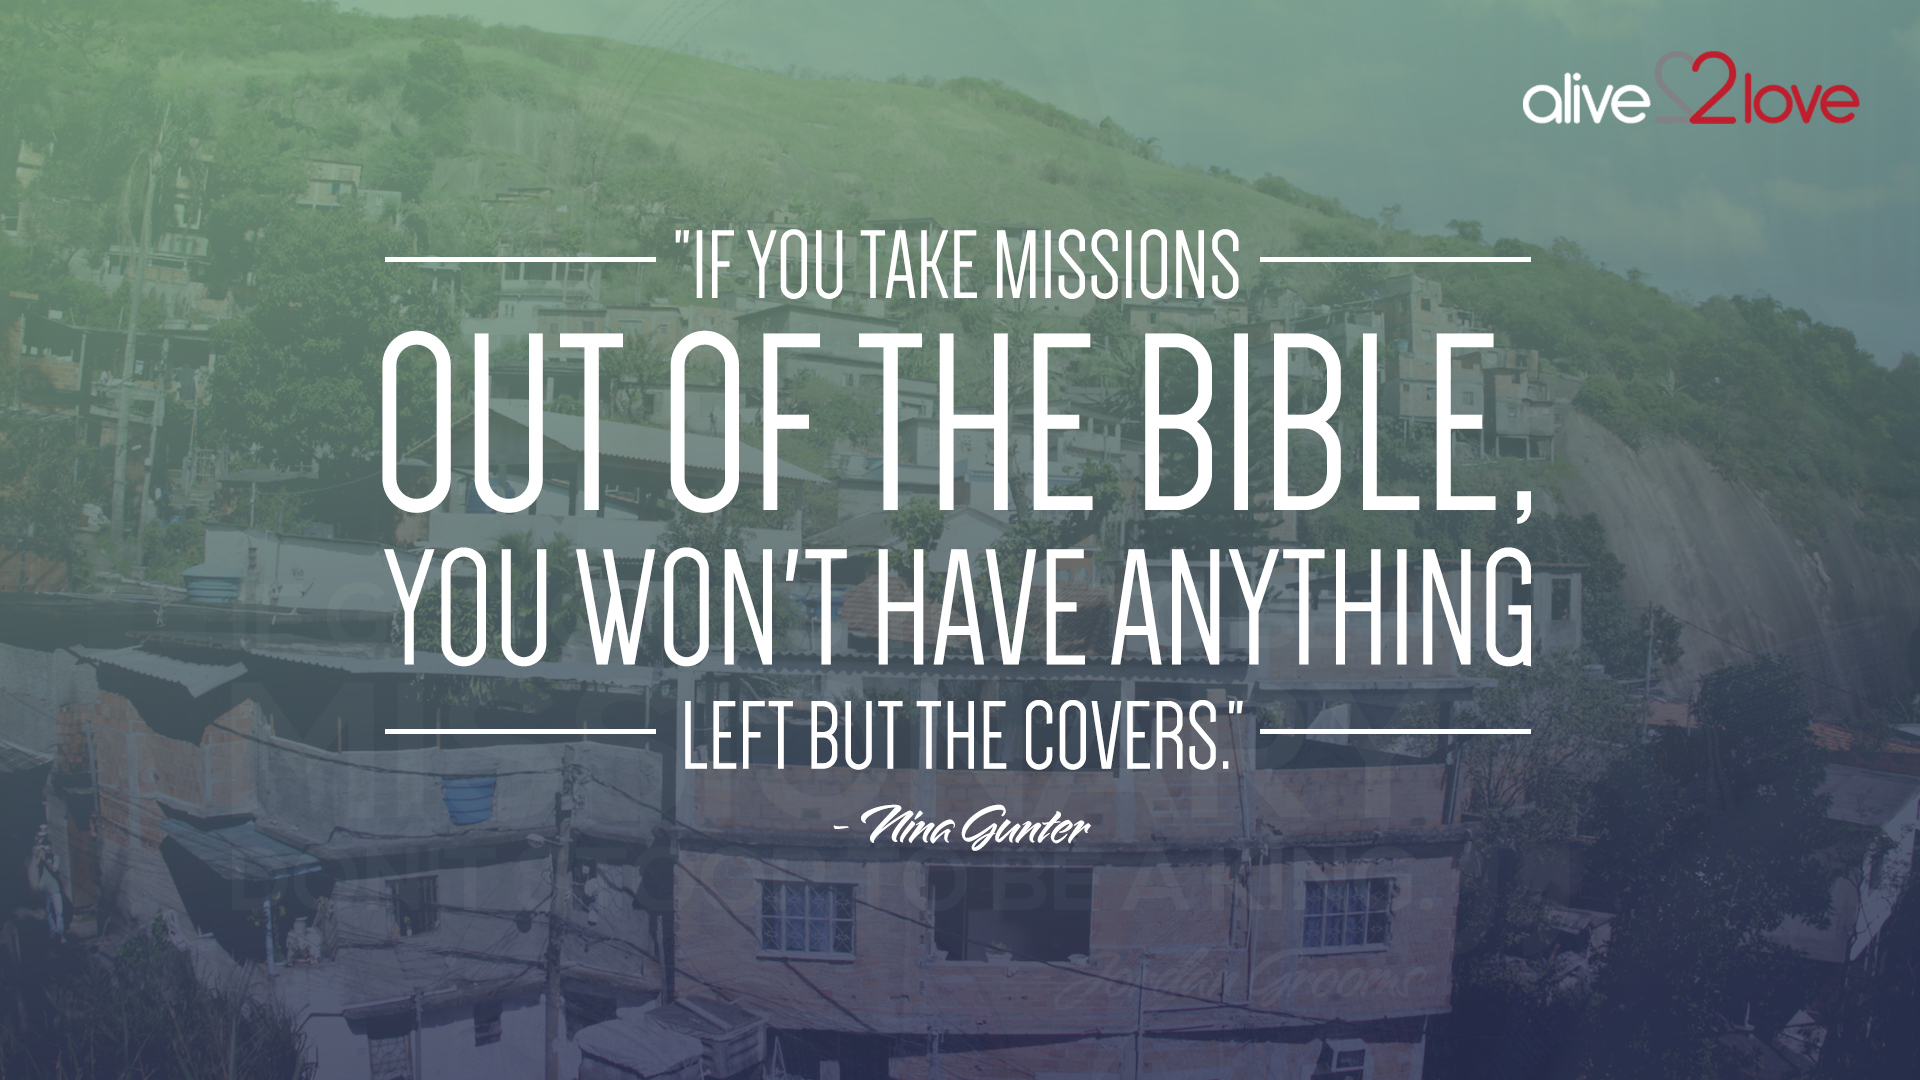 Is Missions in the Bible?